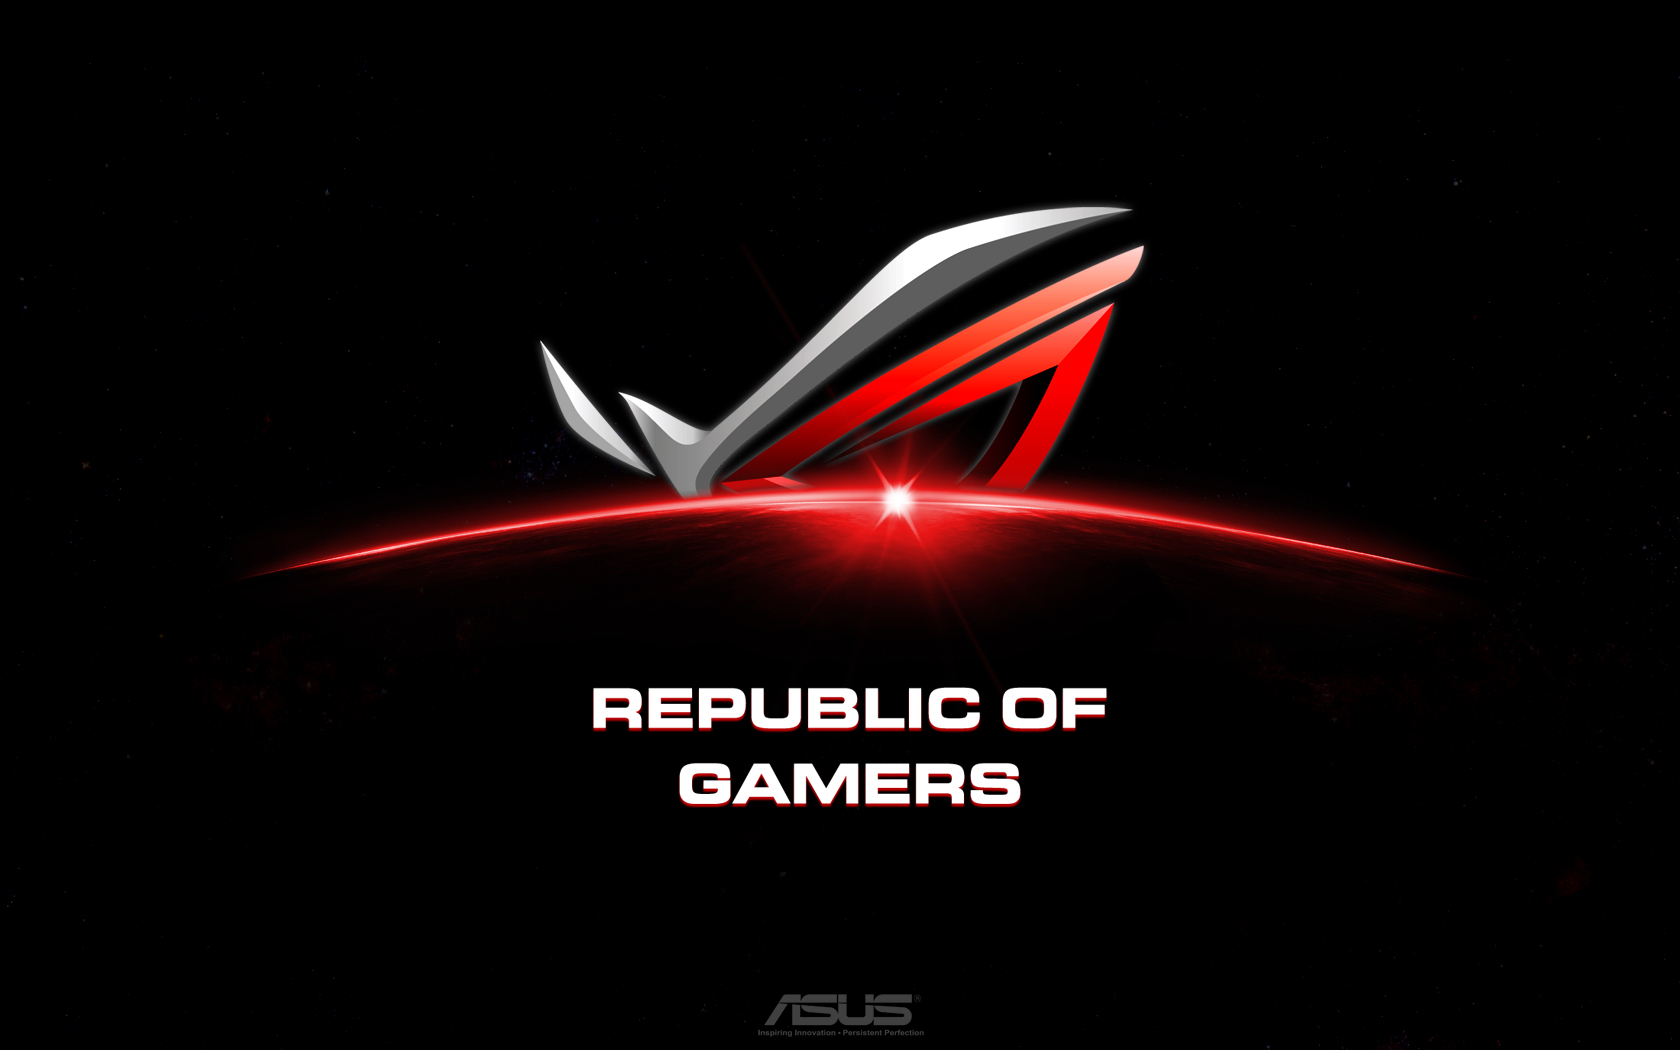 Asus: Republic of Gamers